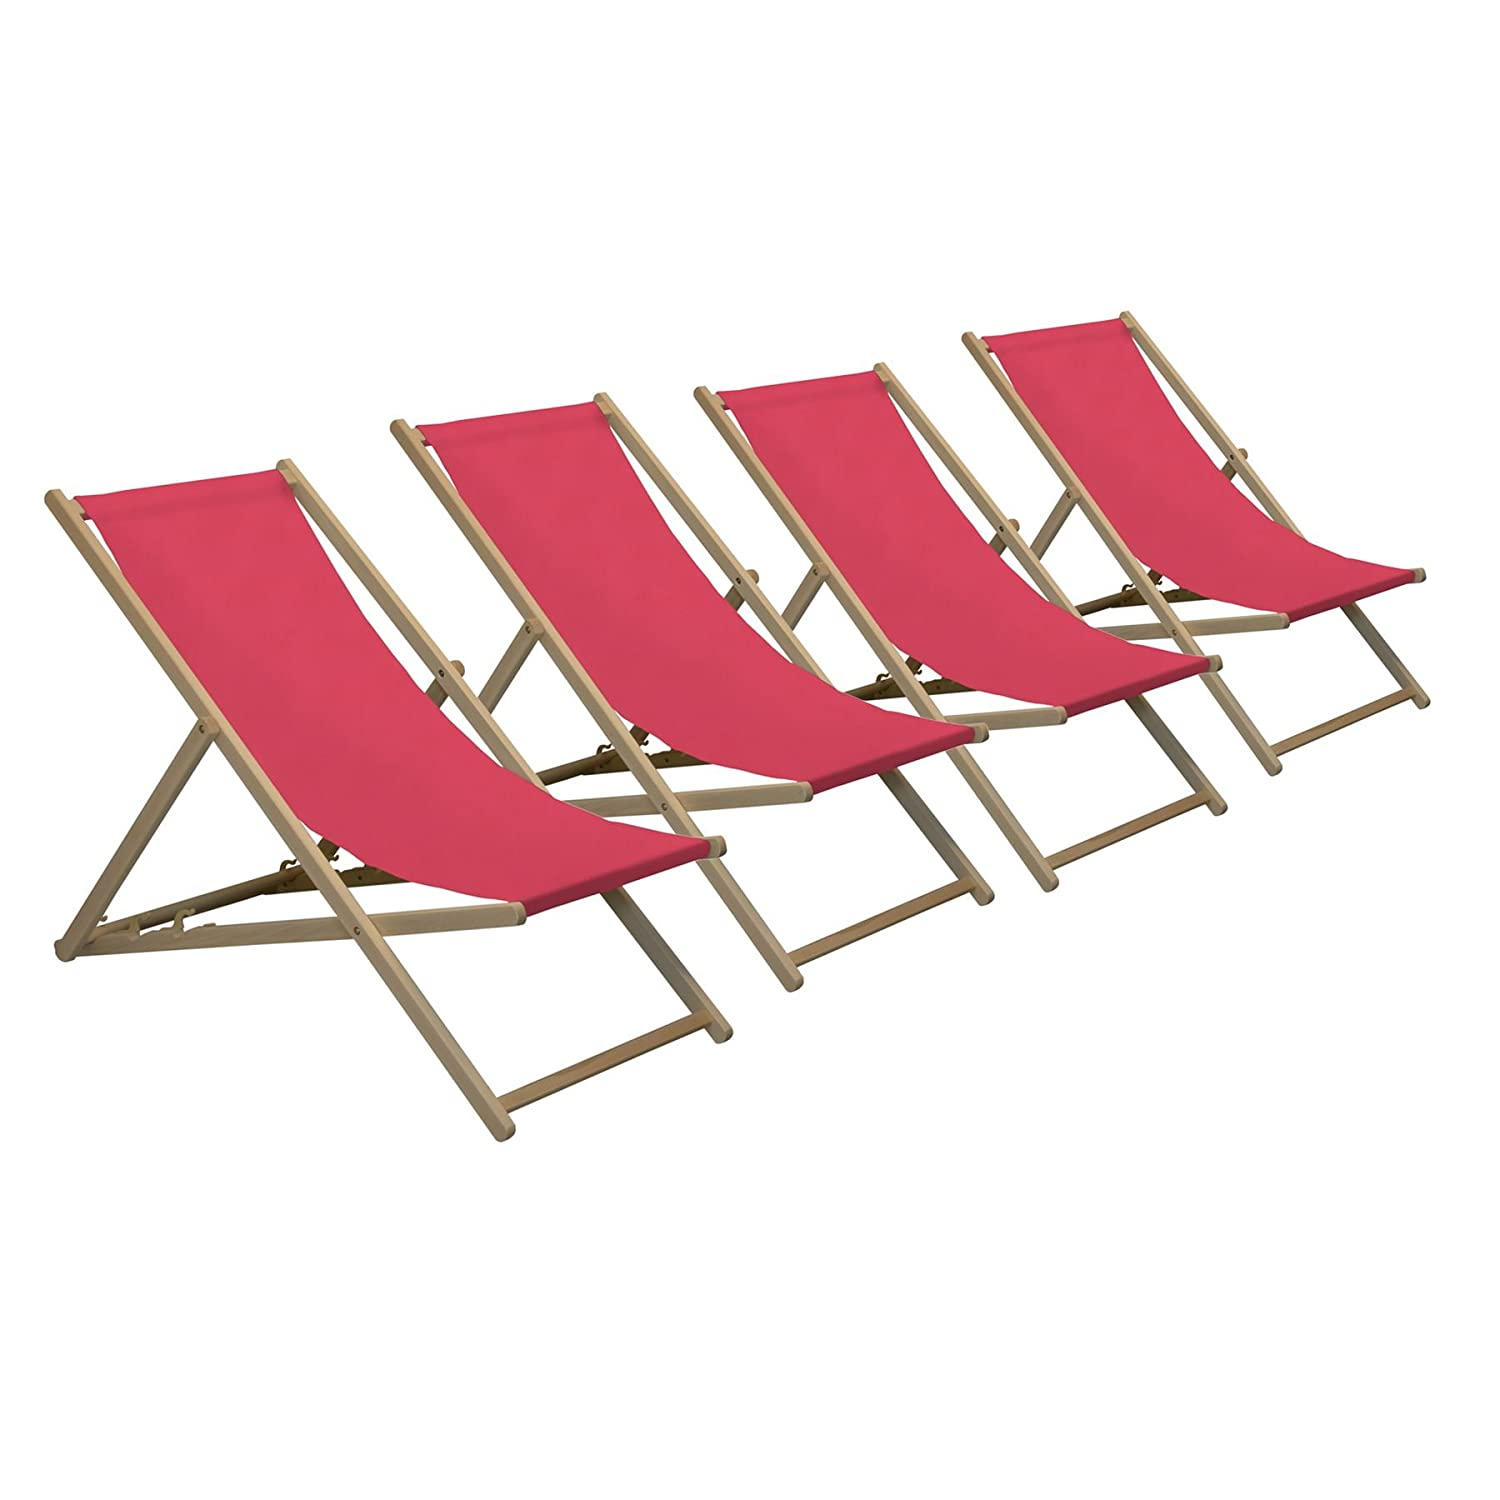 Harbour Housewares Traditional Adjustable Wooden Beach Garden Deck Chair - Pink - Pack of 4